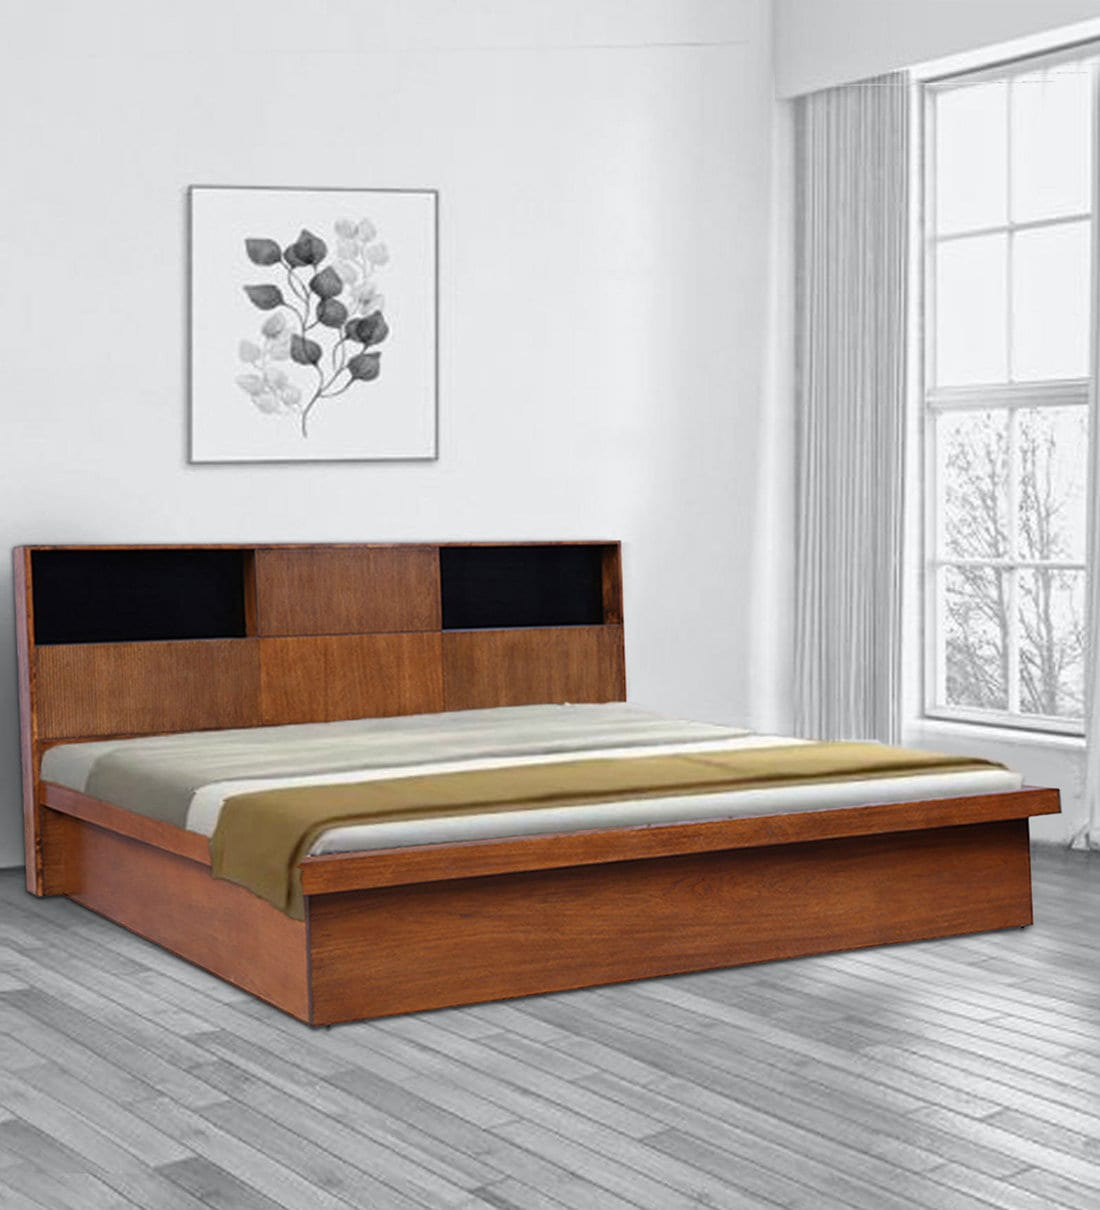 Picture of: Buy Mystique Queen Size Platform Bed With Storage In Walnut Finish By Hometown Online Platform Queen Size Beds Beds Furniture Pepperfry Product